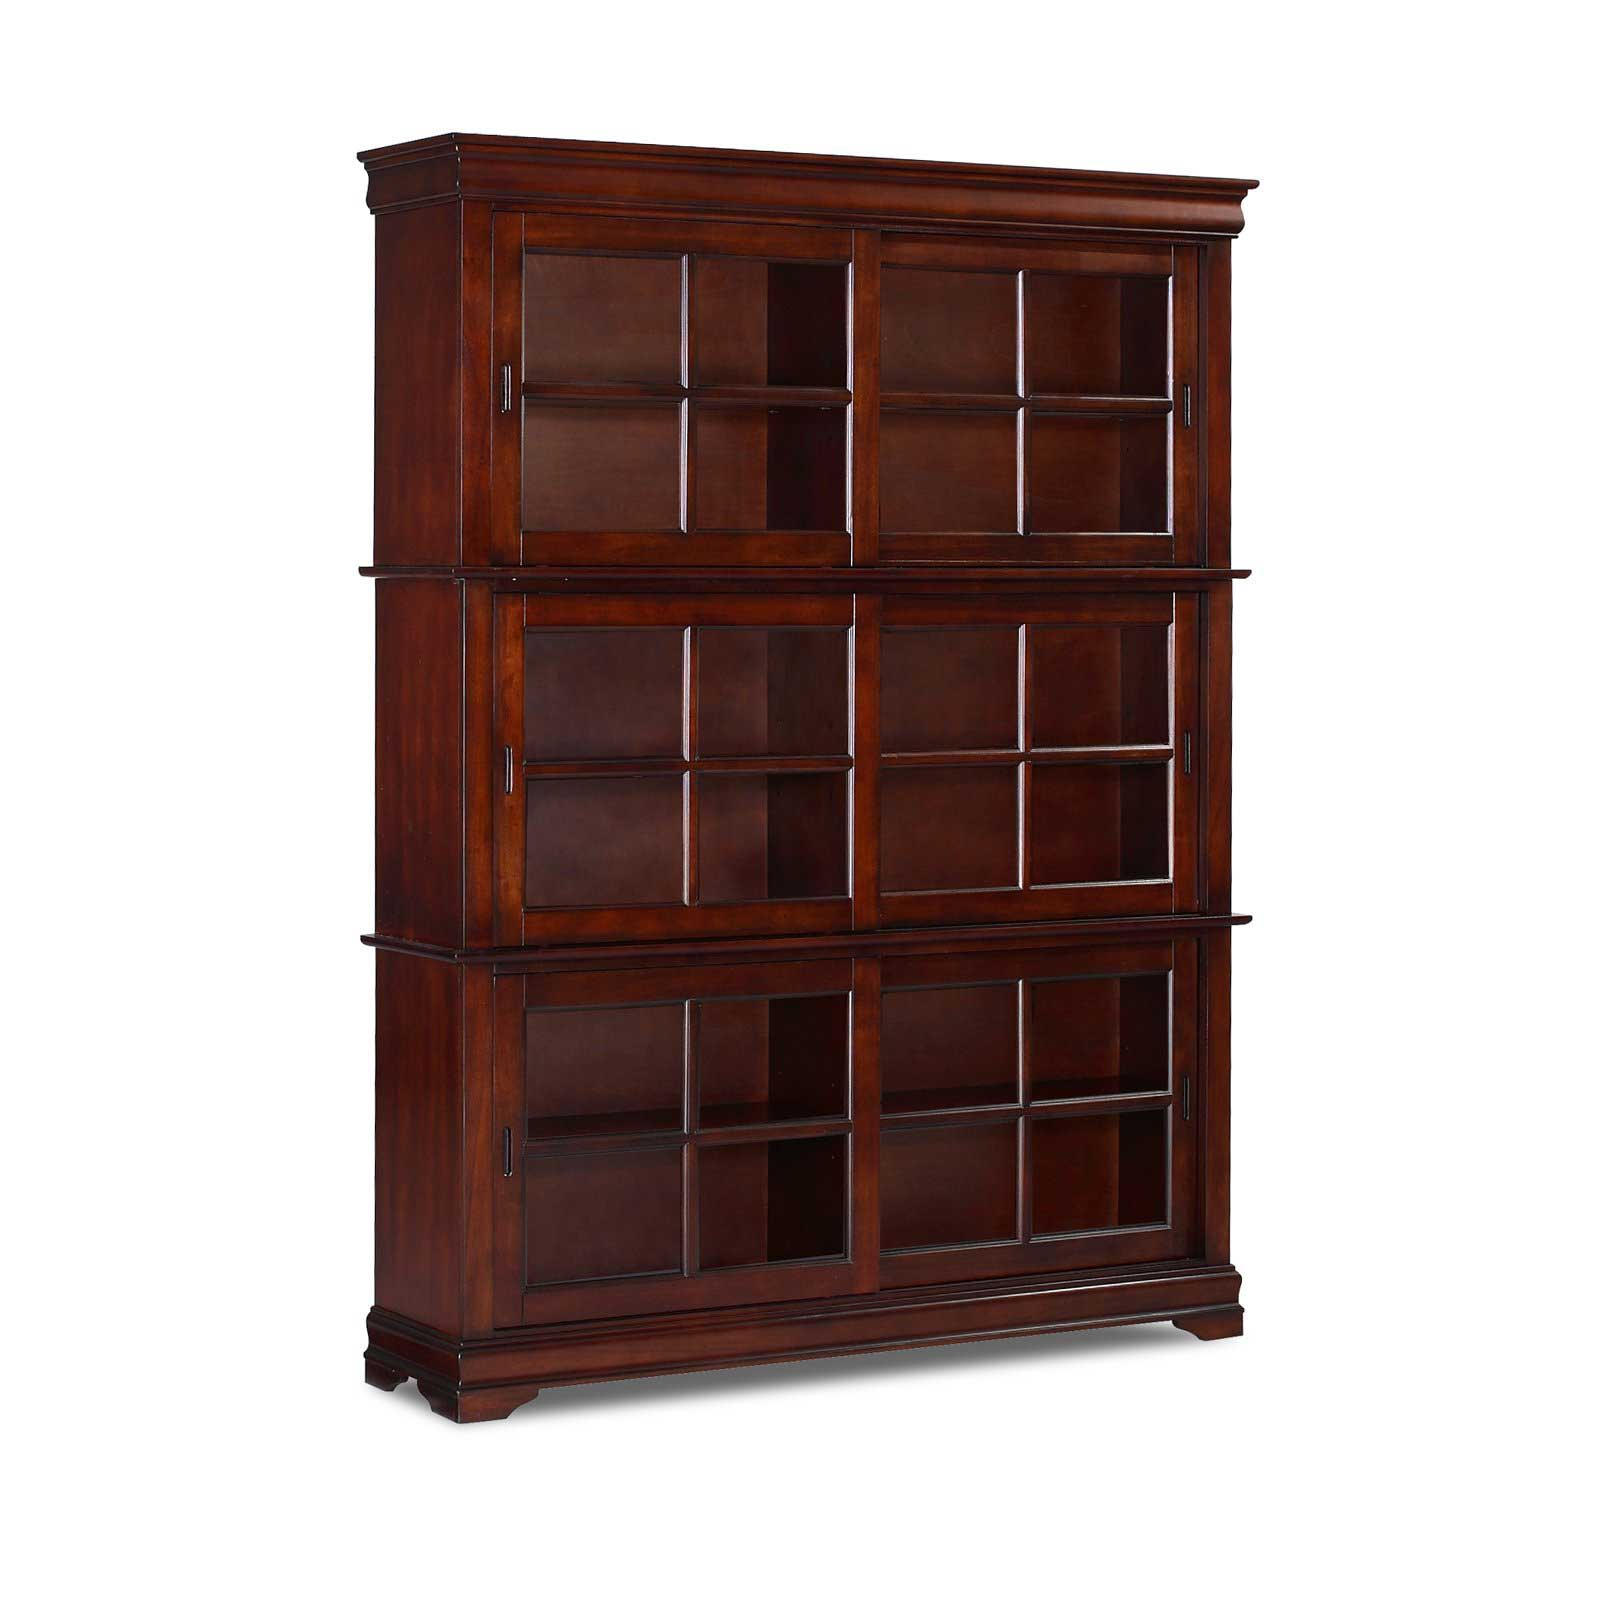 Oak Barrister Bookcase To Organize Your Books Office